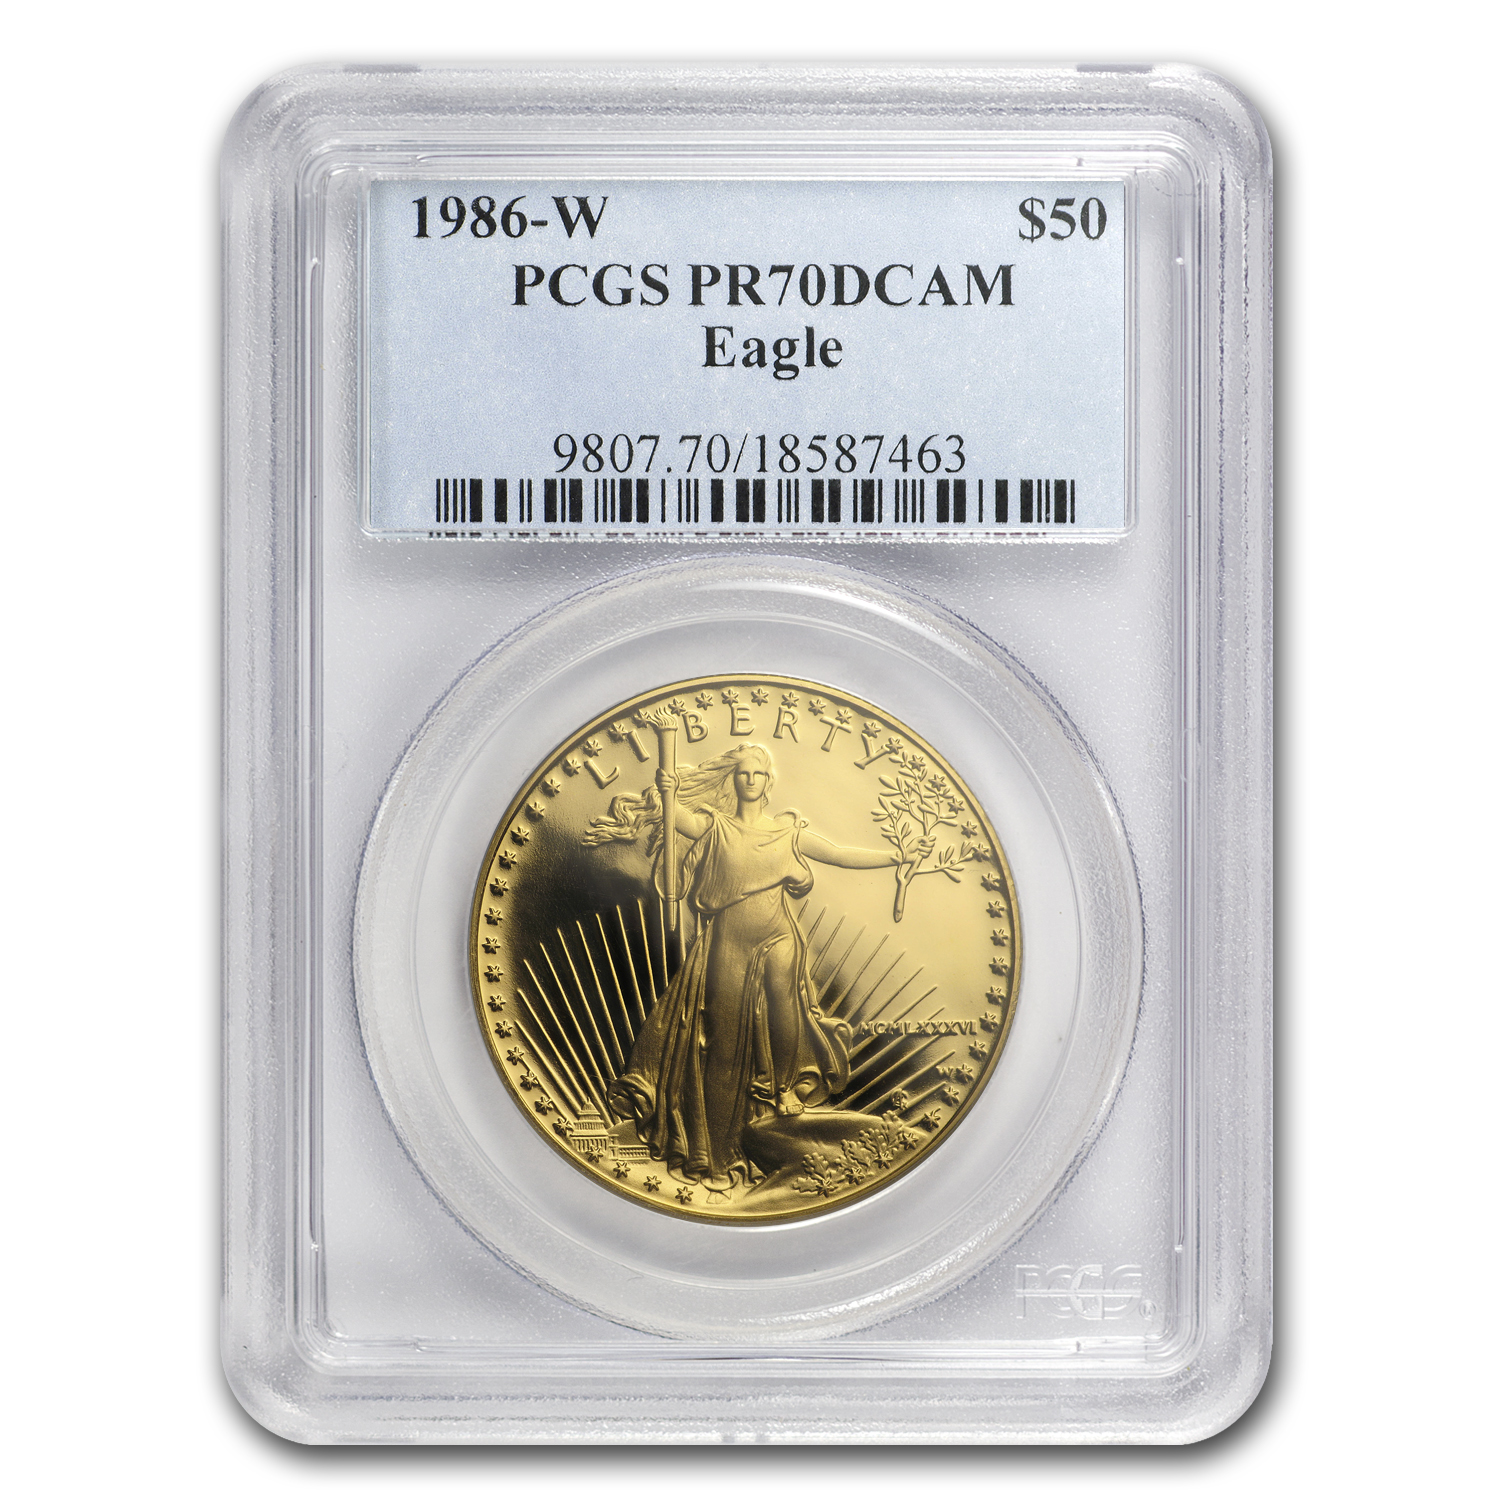 1986-W 1 oz Proof Gold American Eagle PR-70 PCGS (Registry Set)